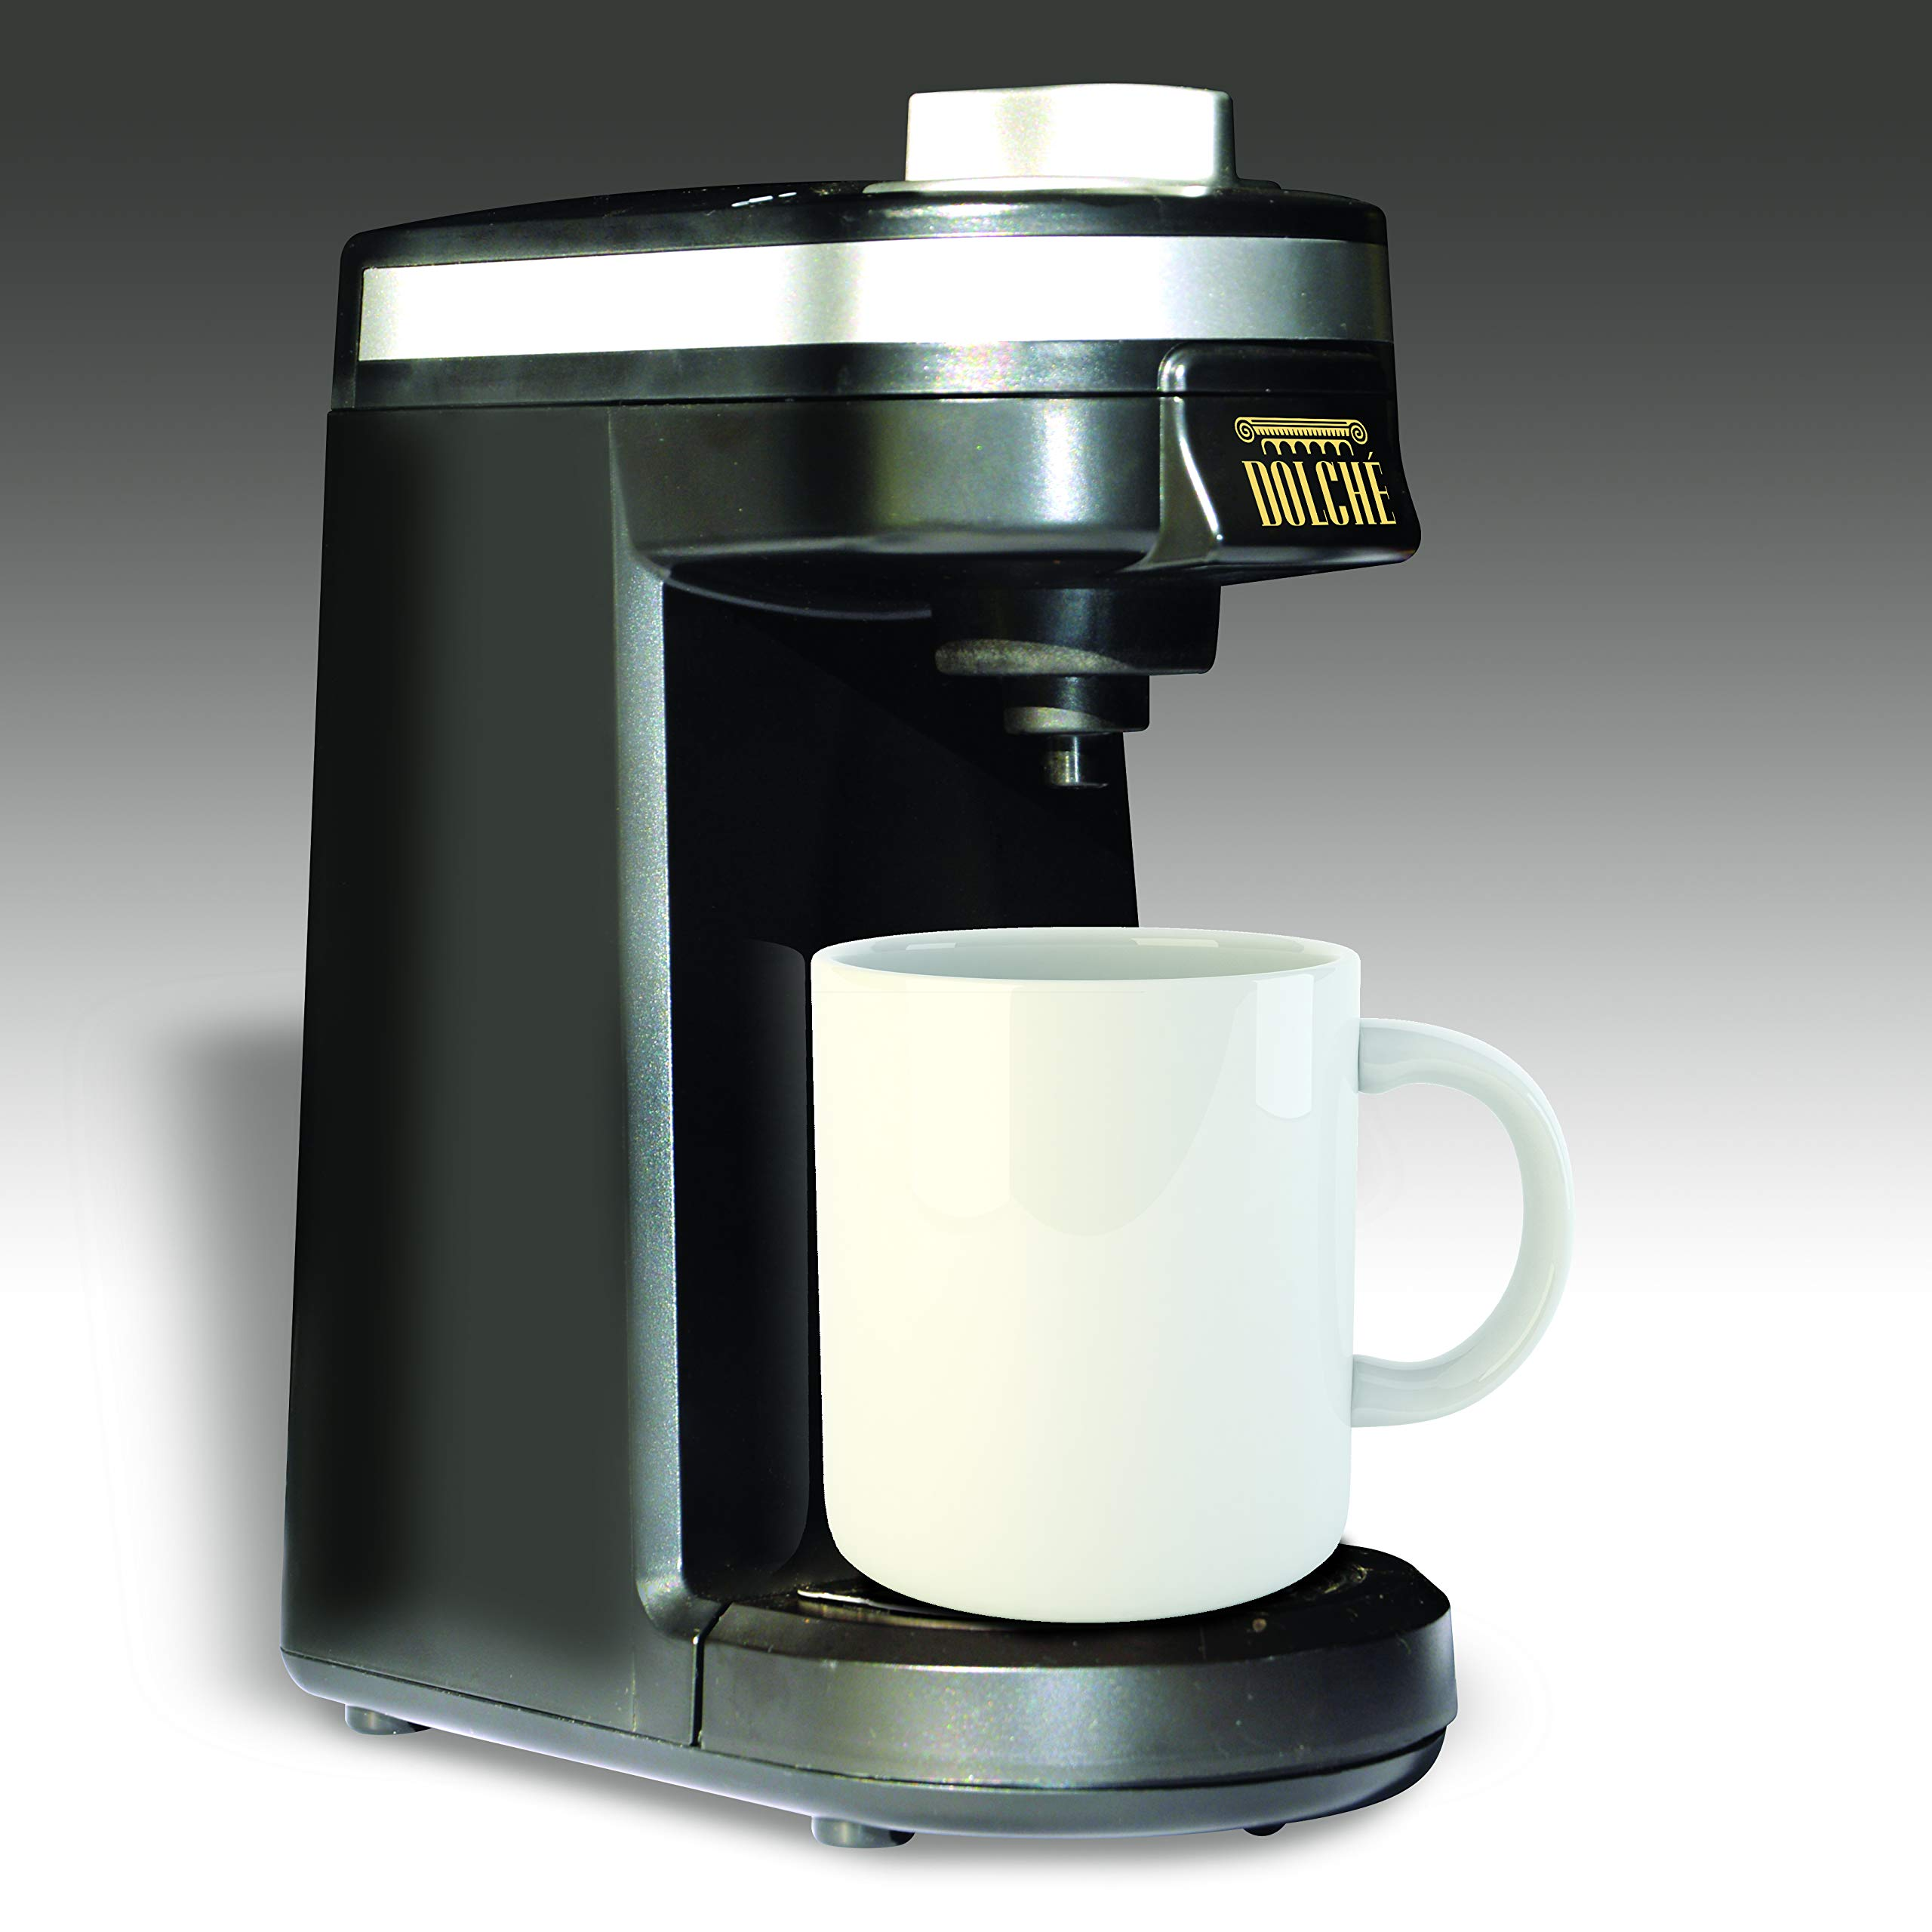 Machine for American Coffee Pods Keurig 2.0 Dolché K-Cups ONE